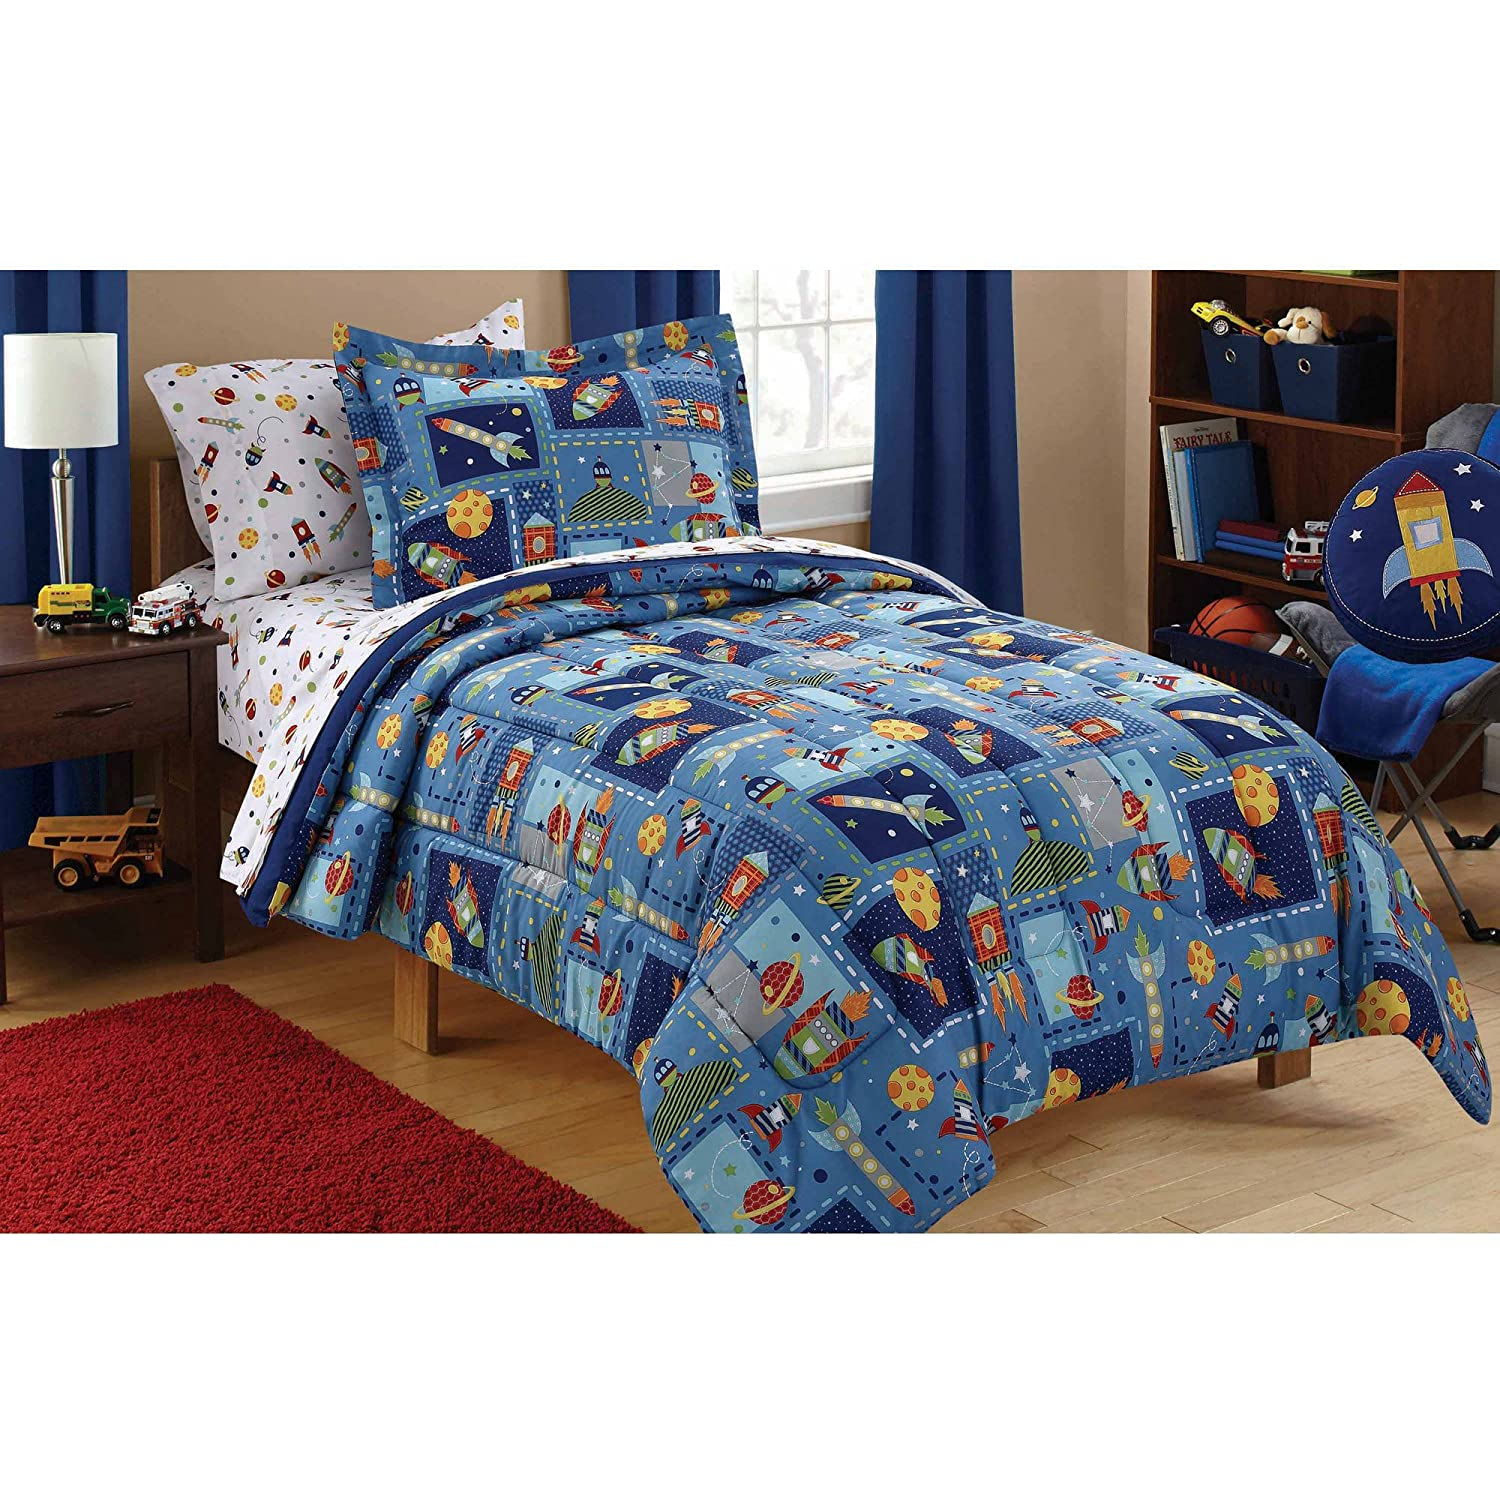 Mainstays Kids Space Bed in a Bag Bedding Set, TWIN